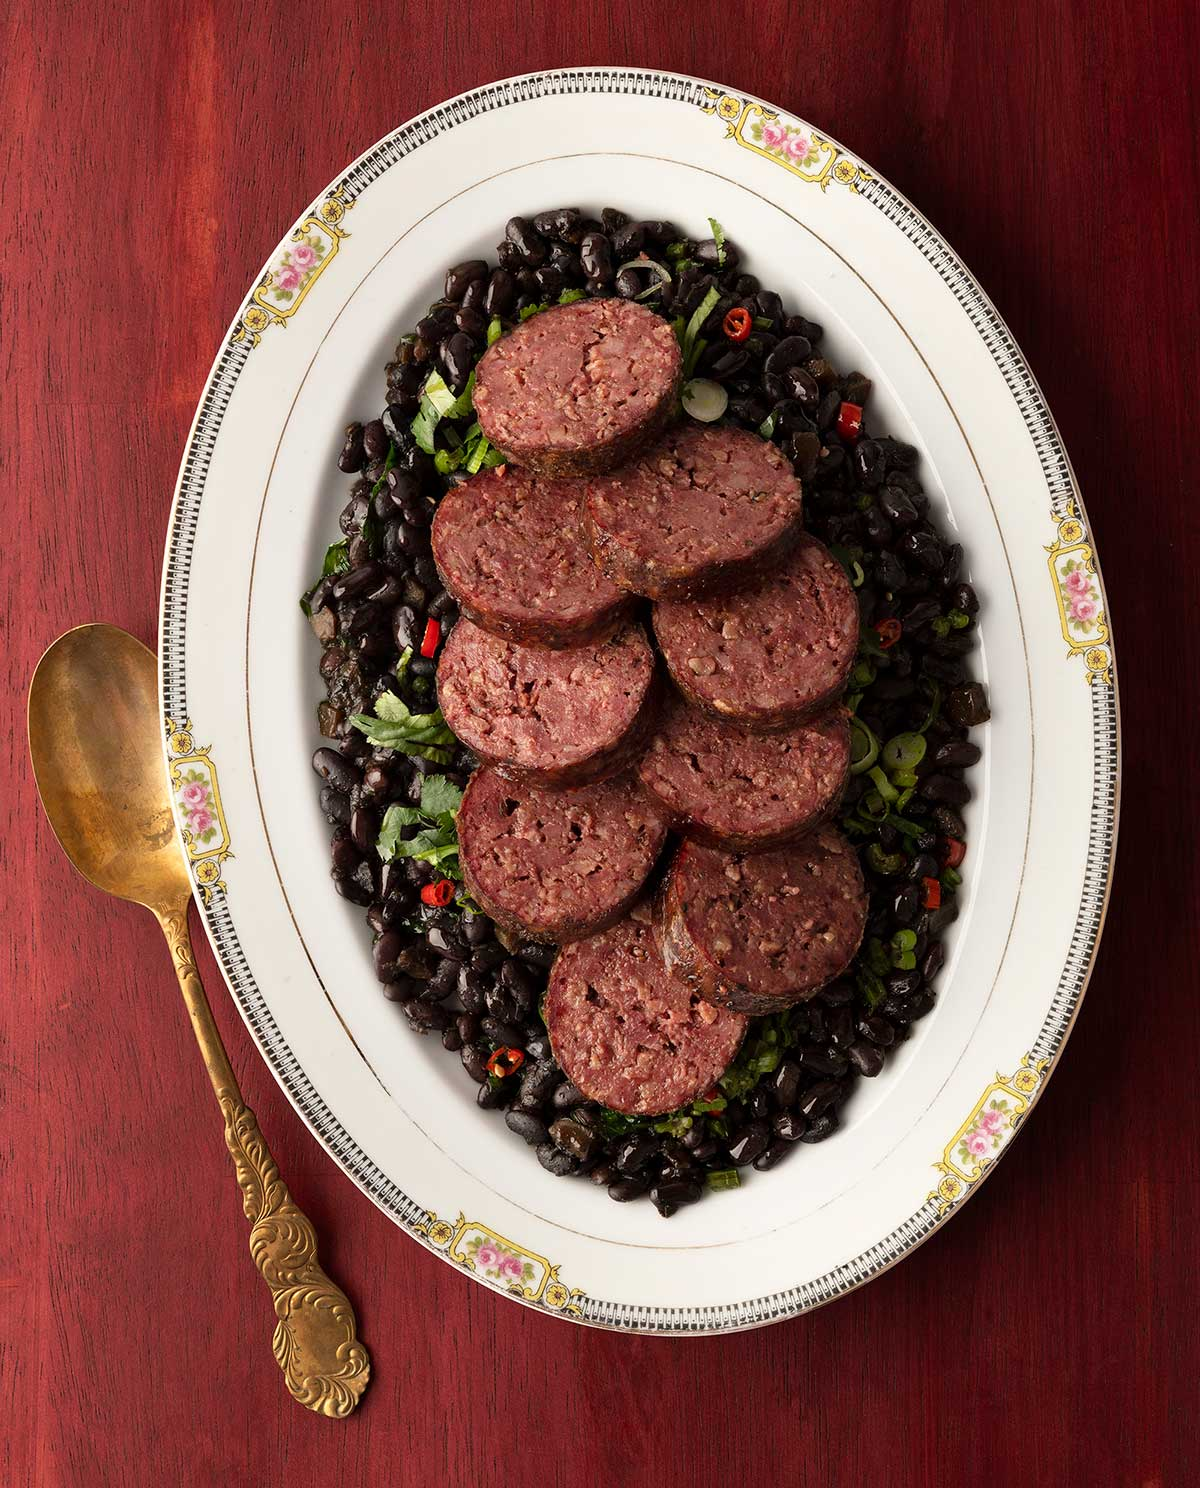 Cooked, sliced cotechino on a platter